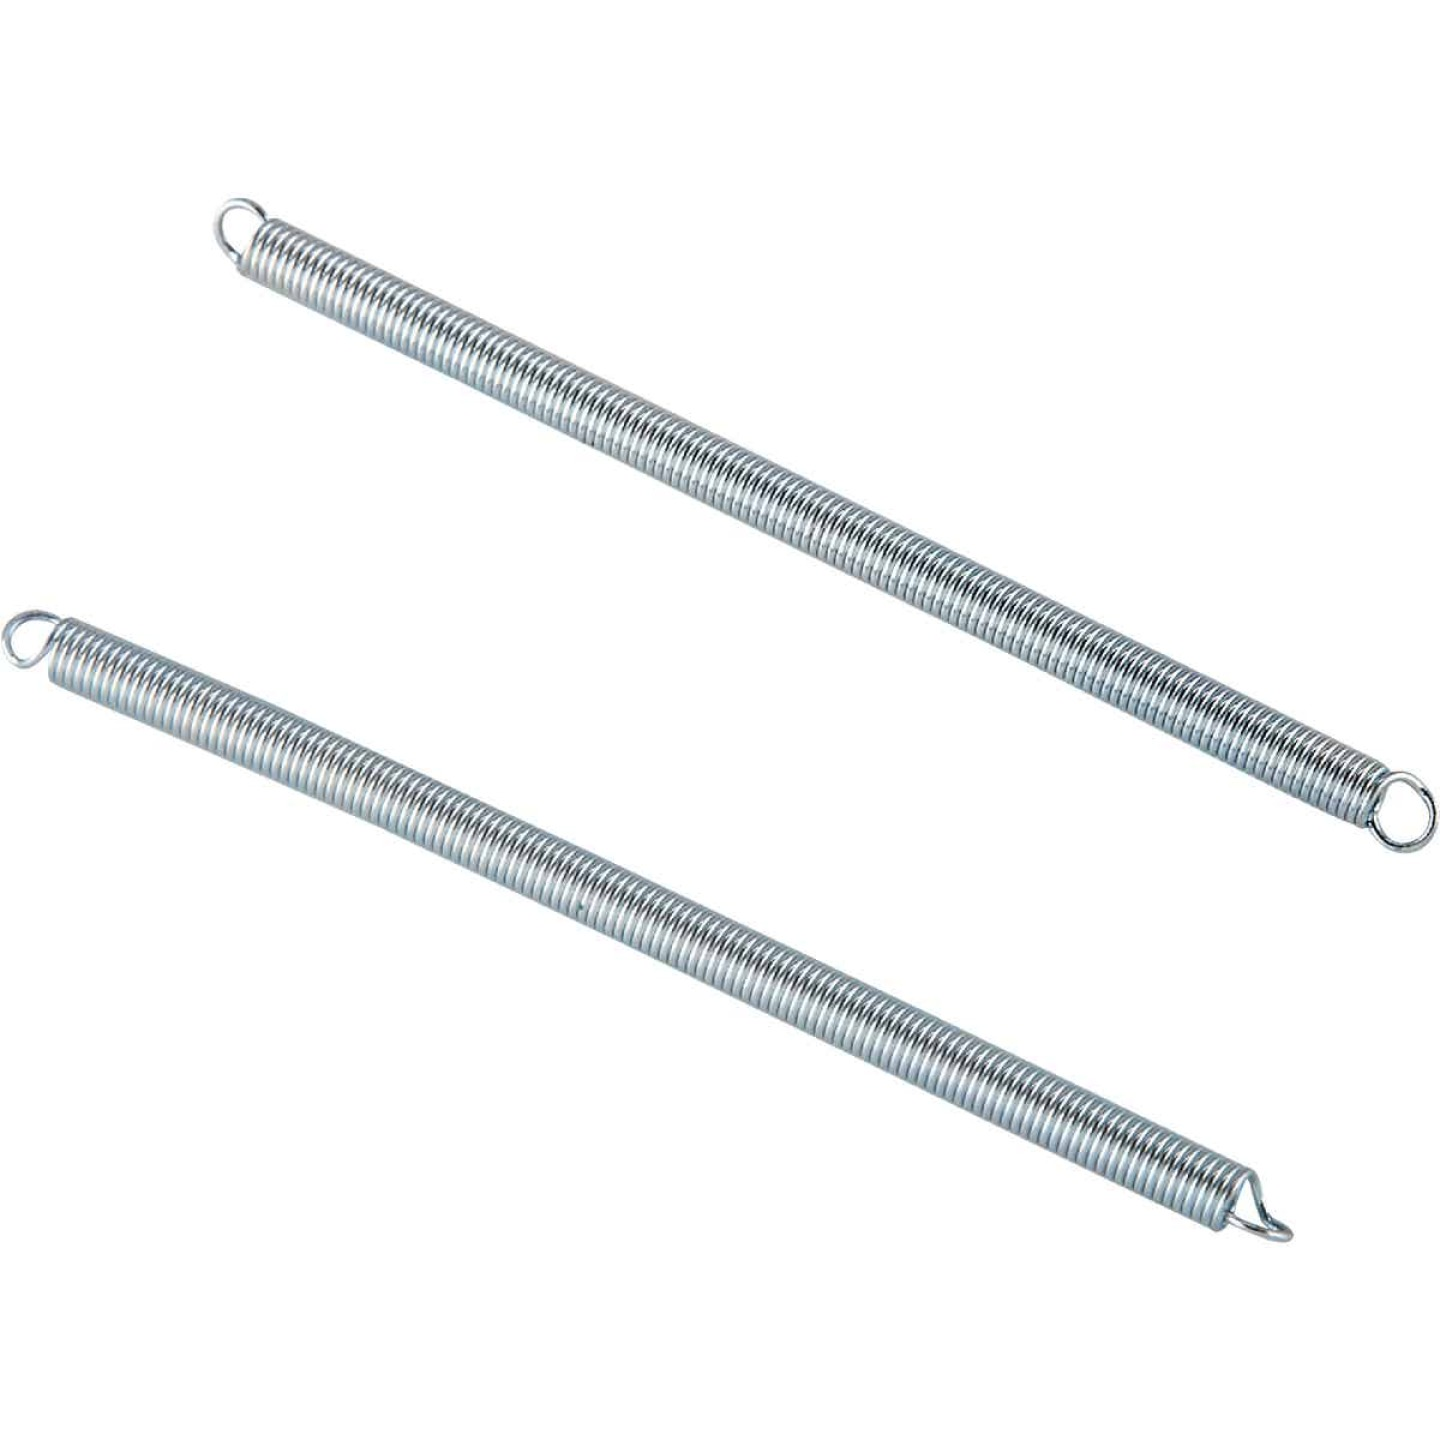 Century Spring 8-1/2 In. x 1 In. Extension Spring (1 Count) Image 1